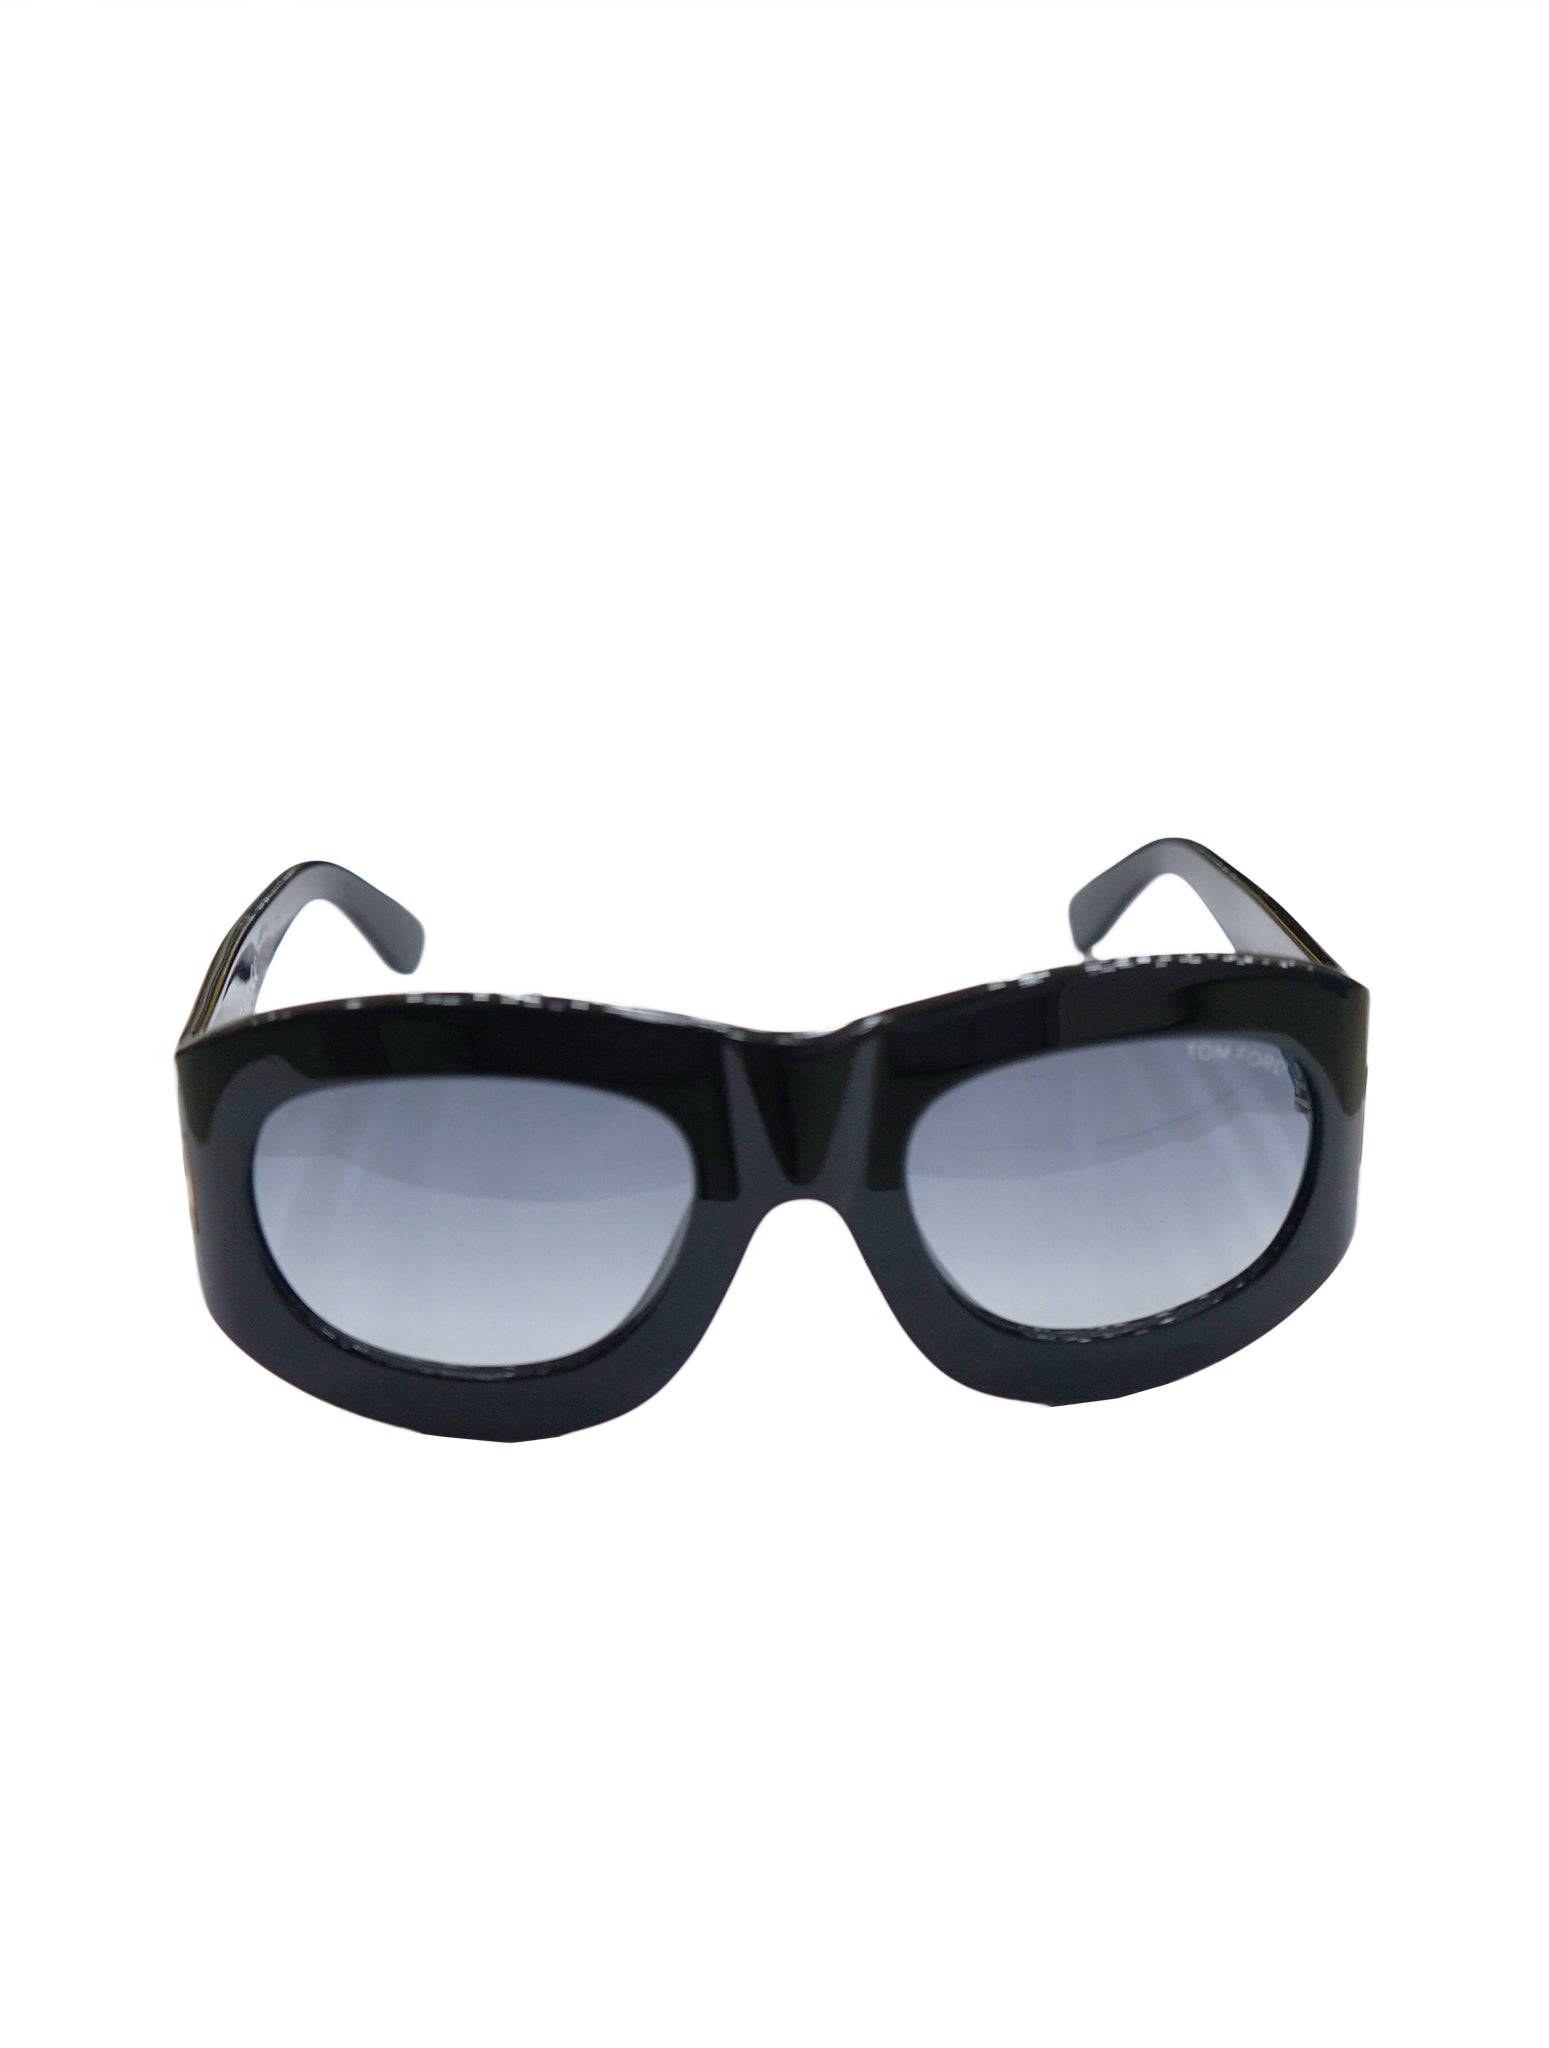 TF403 MILA BLACK SUNGLASSES